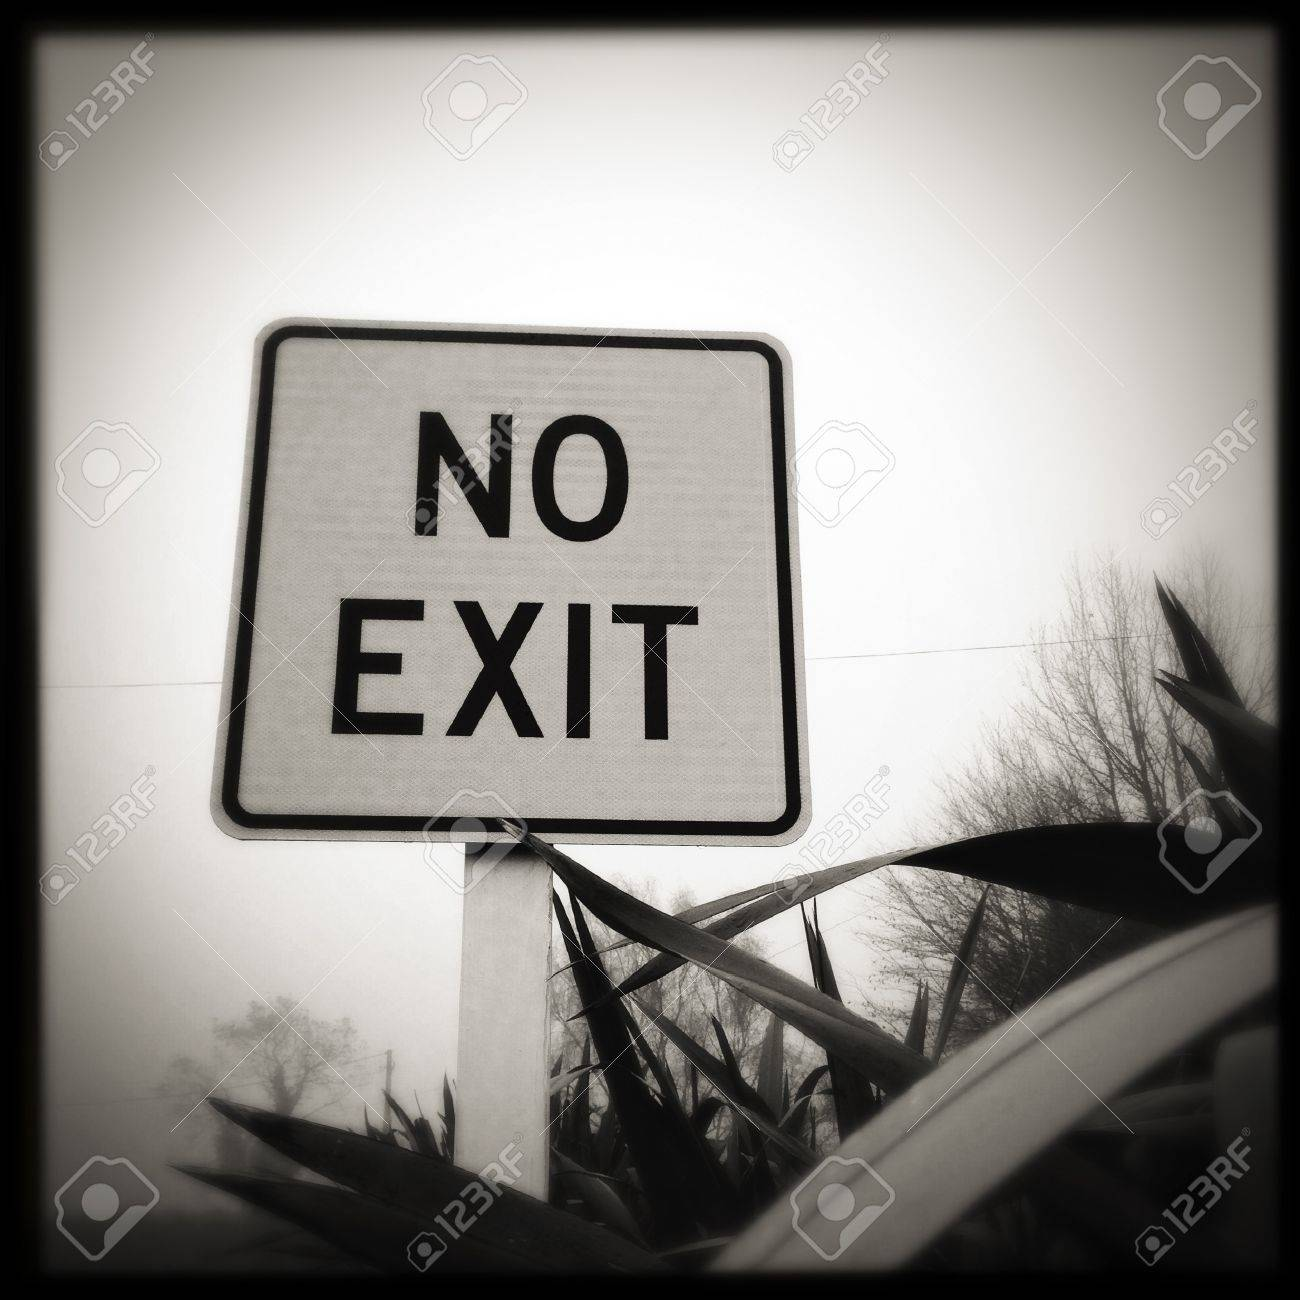 No exit sign Stock Photo - 21035453